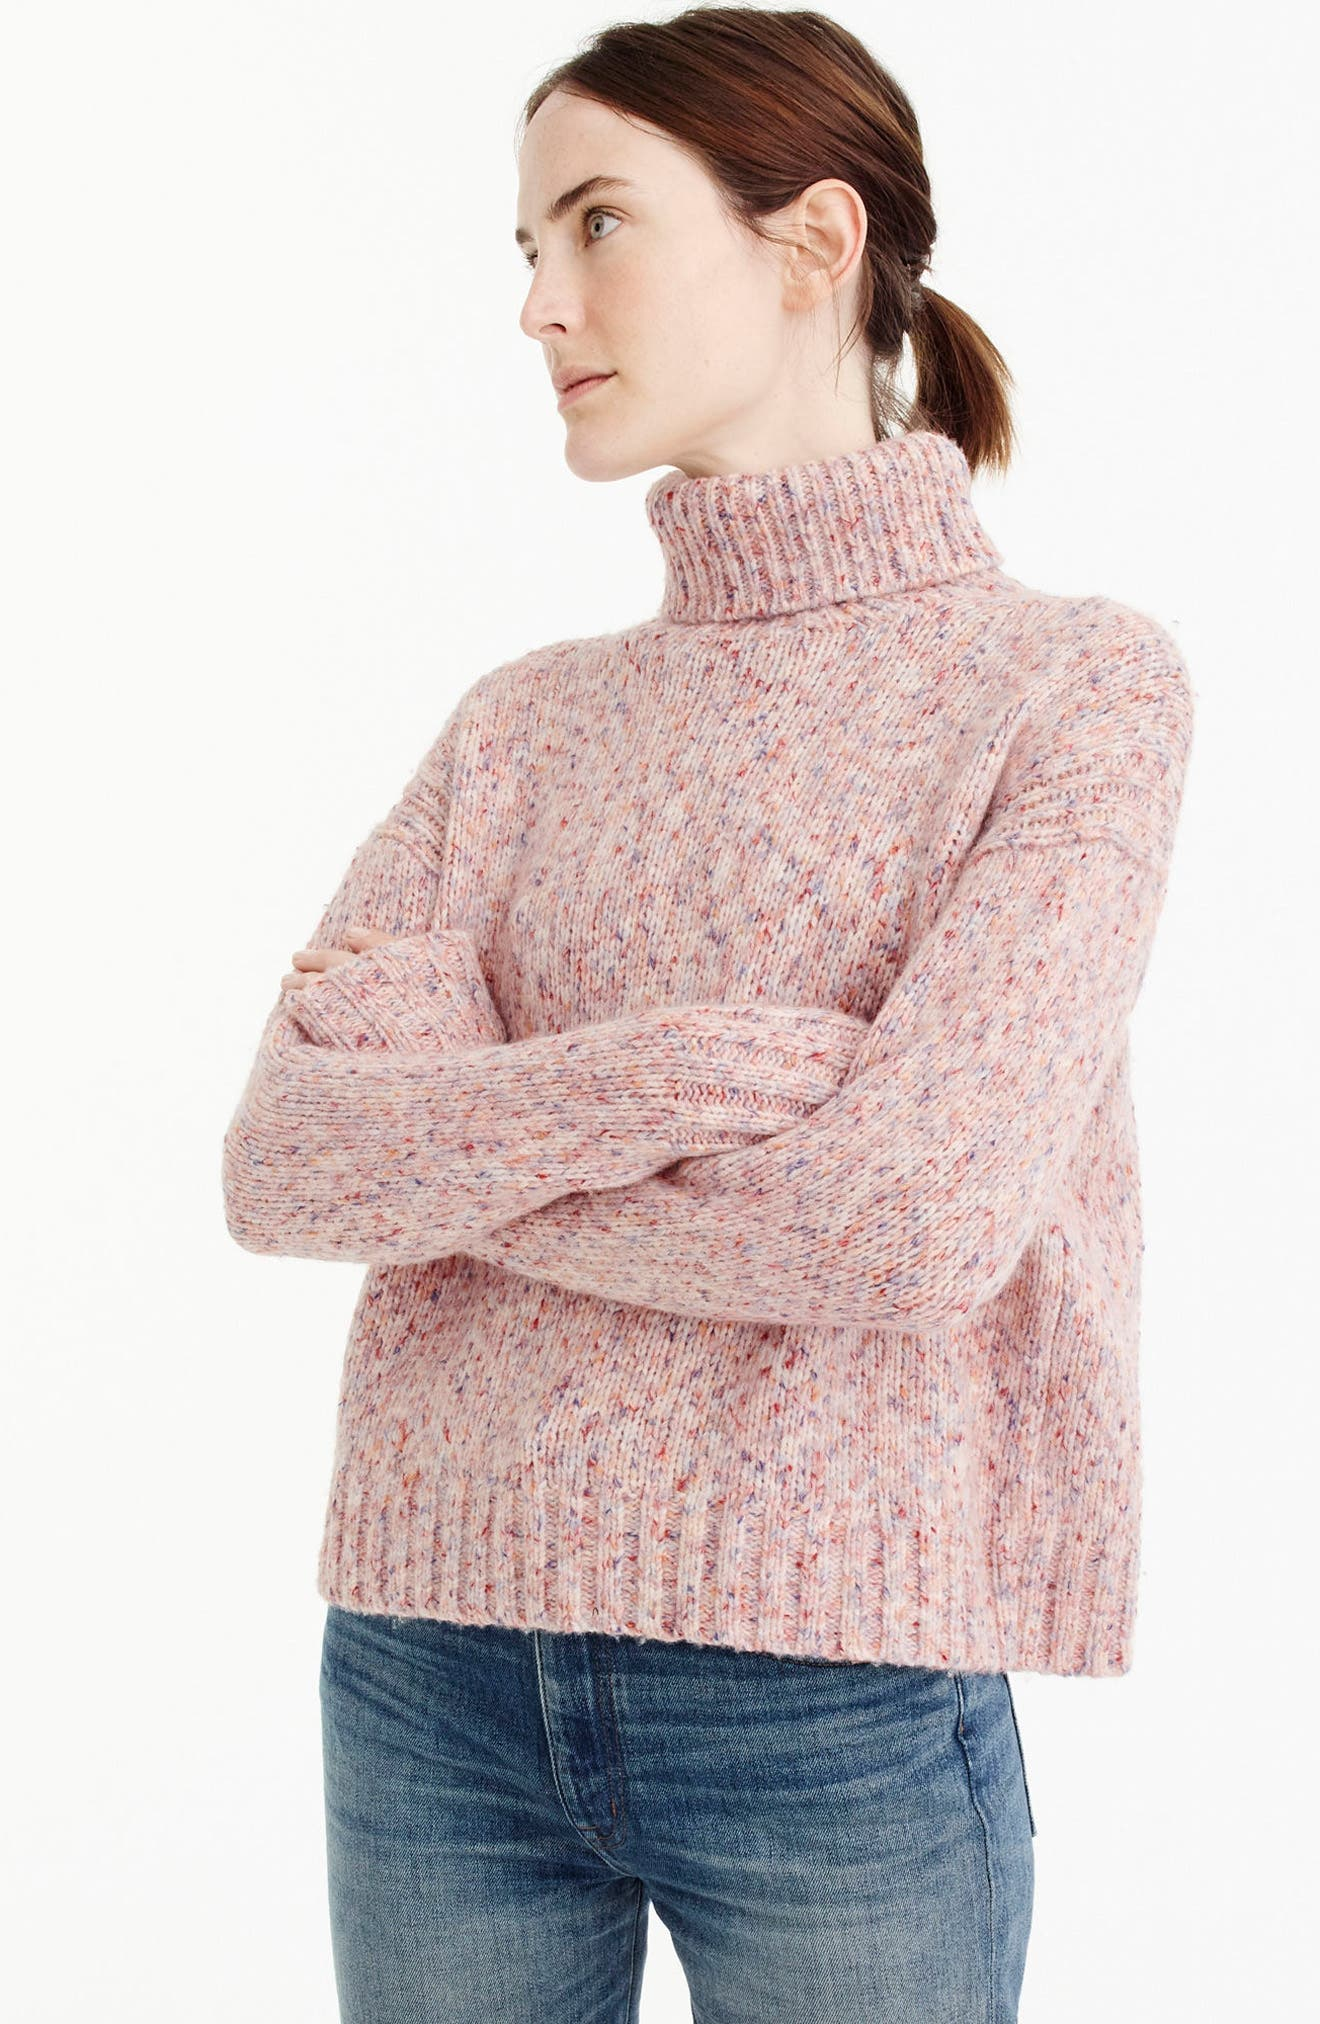 J.Crew Marled Wool Blend Turtleneck Sweater,                             Alternate thumbnail 3, color,                             Marled Confetti